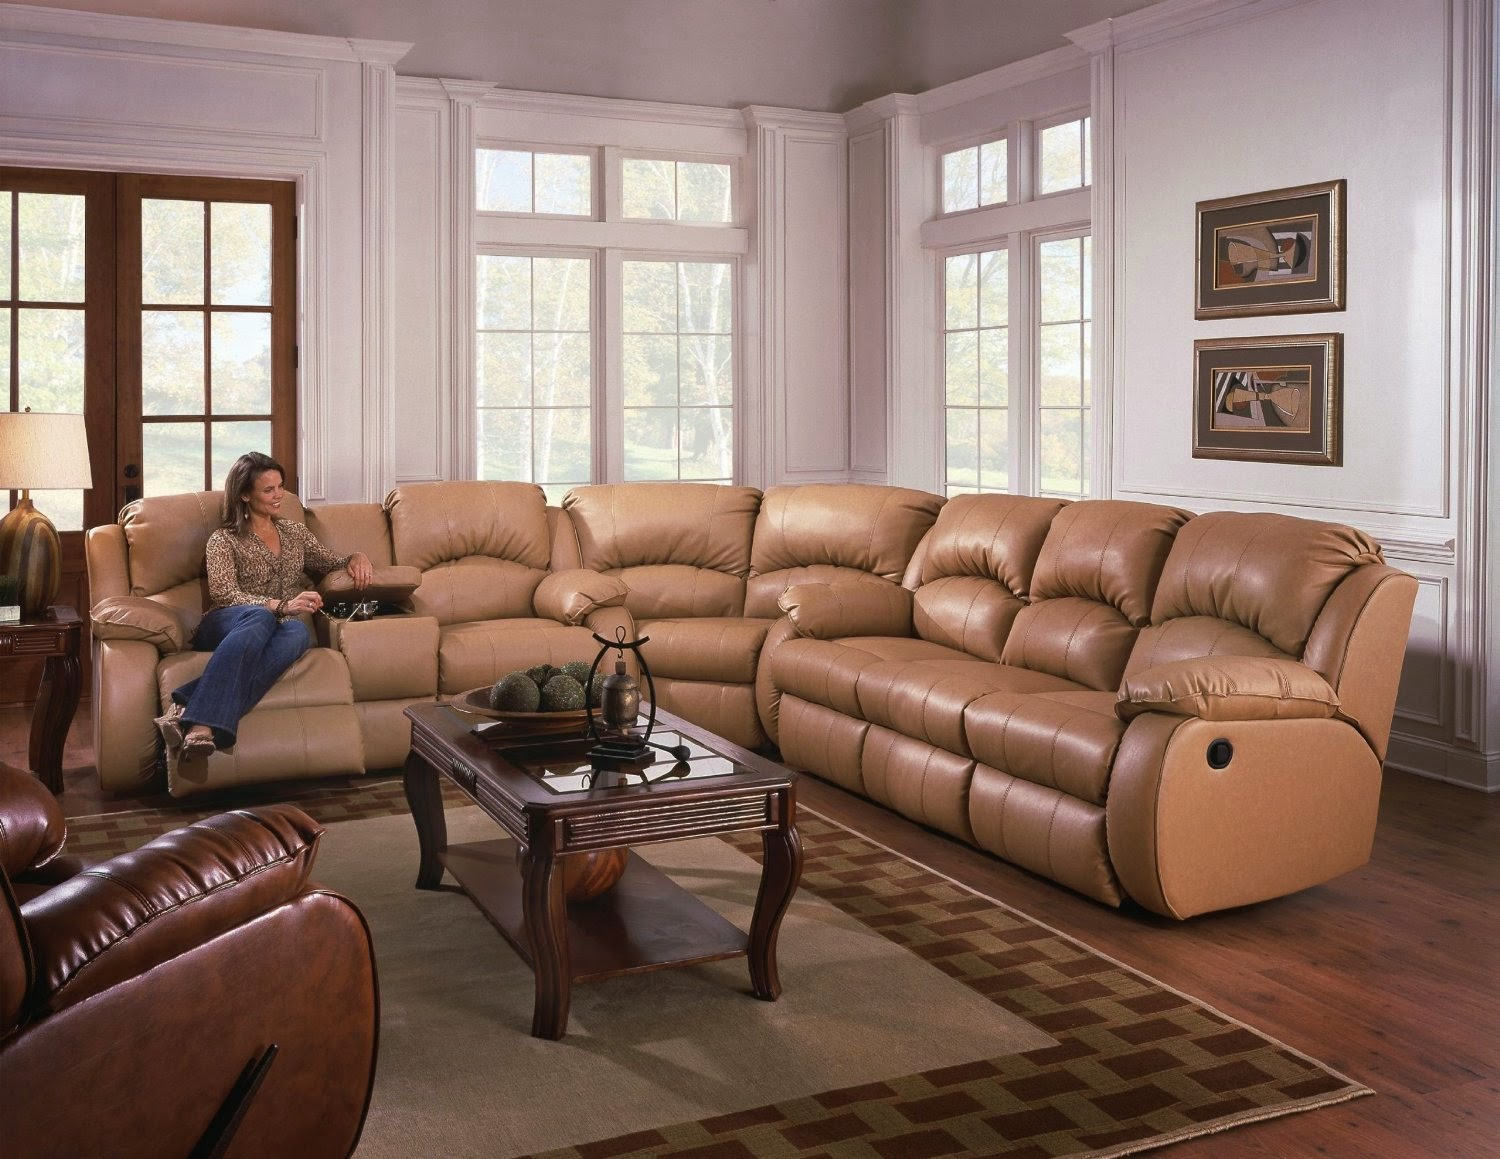 Lane Dual Power Reclining Sofa Novara Ivory Lounger With Storage Ottoman The Best Home Furnishings Reviews: Southern ...